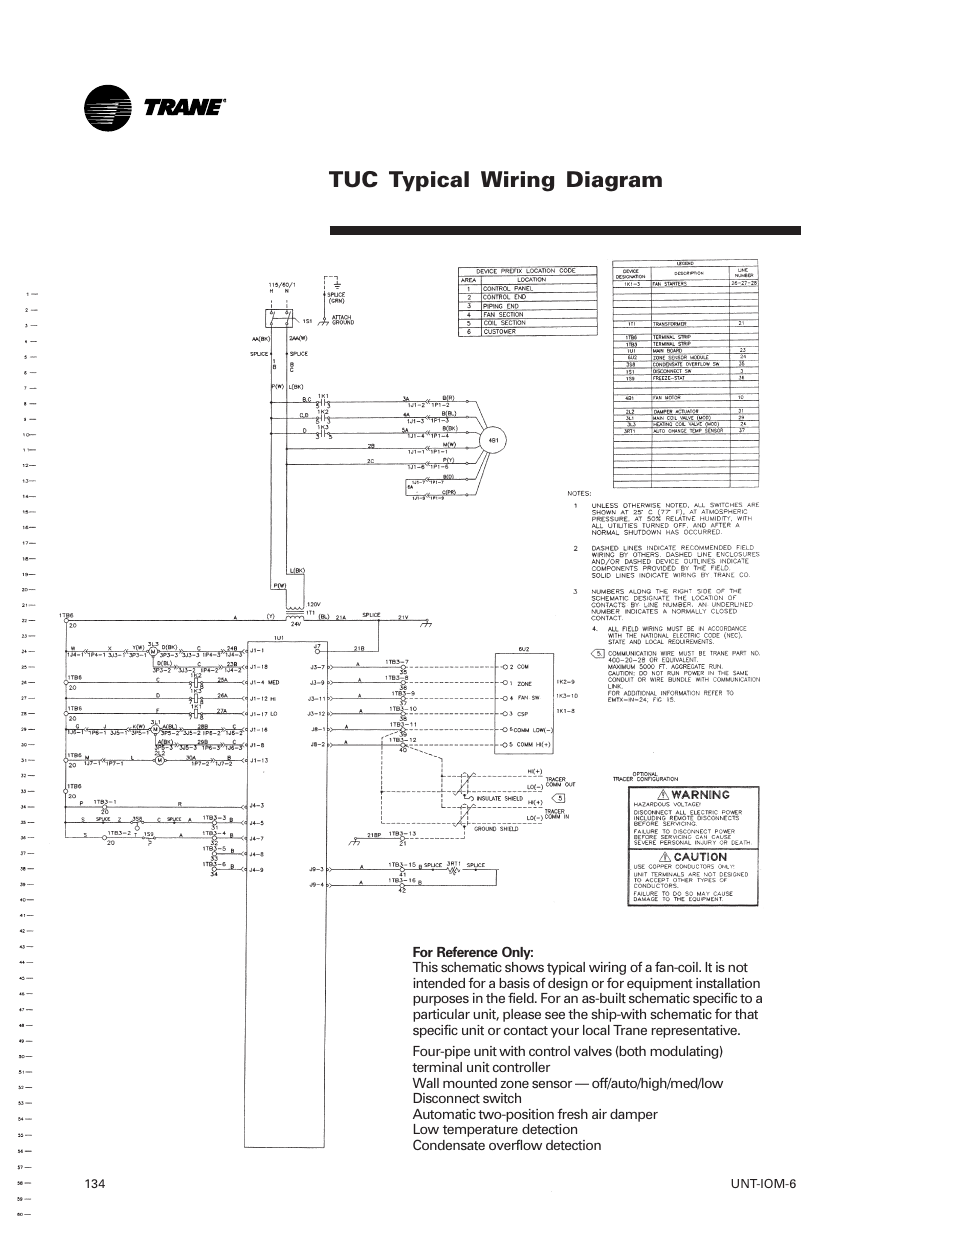 Tuc Typical Wiring Diagram Trane Lo User Manual Page 134 136 Fan Coil Unit